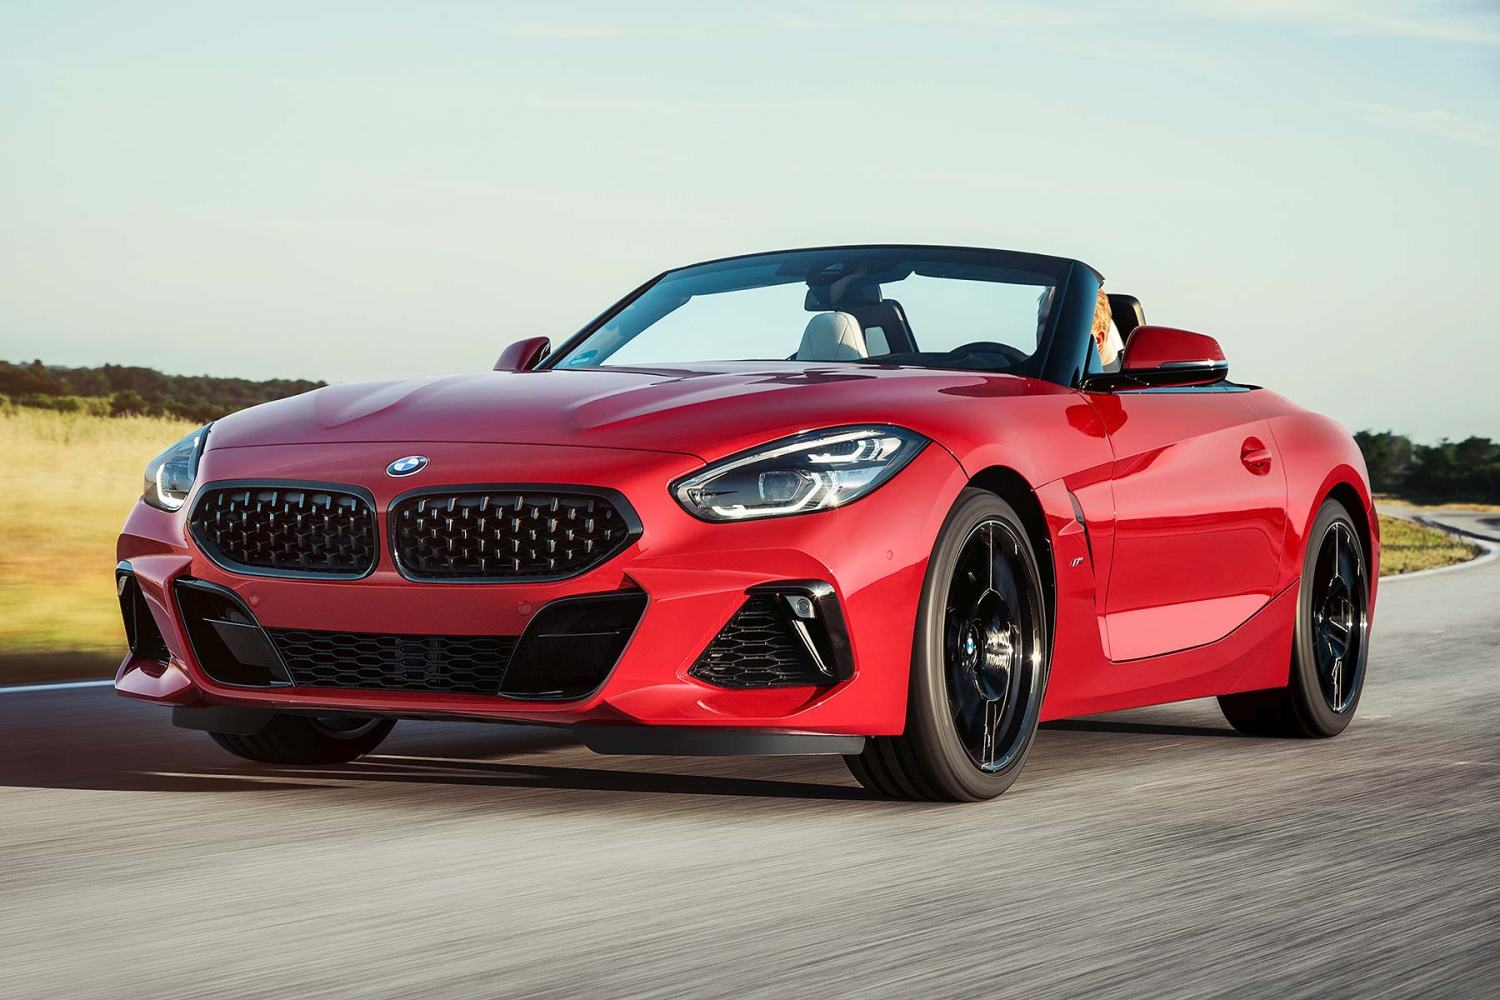 New 2019 Bmw Z4 Revealed At Pebble Beach